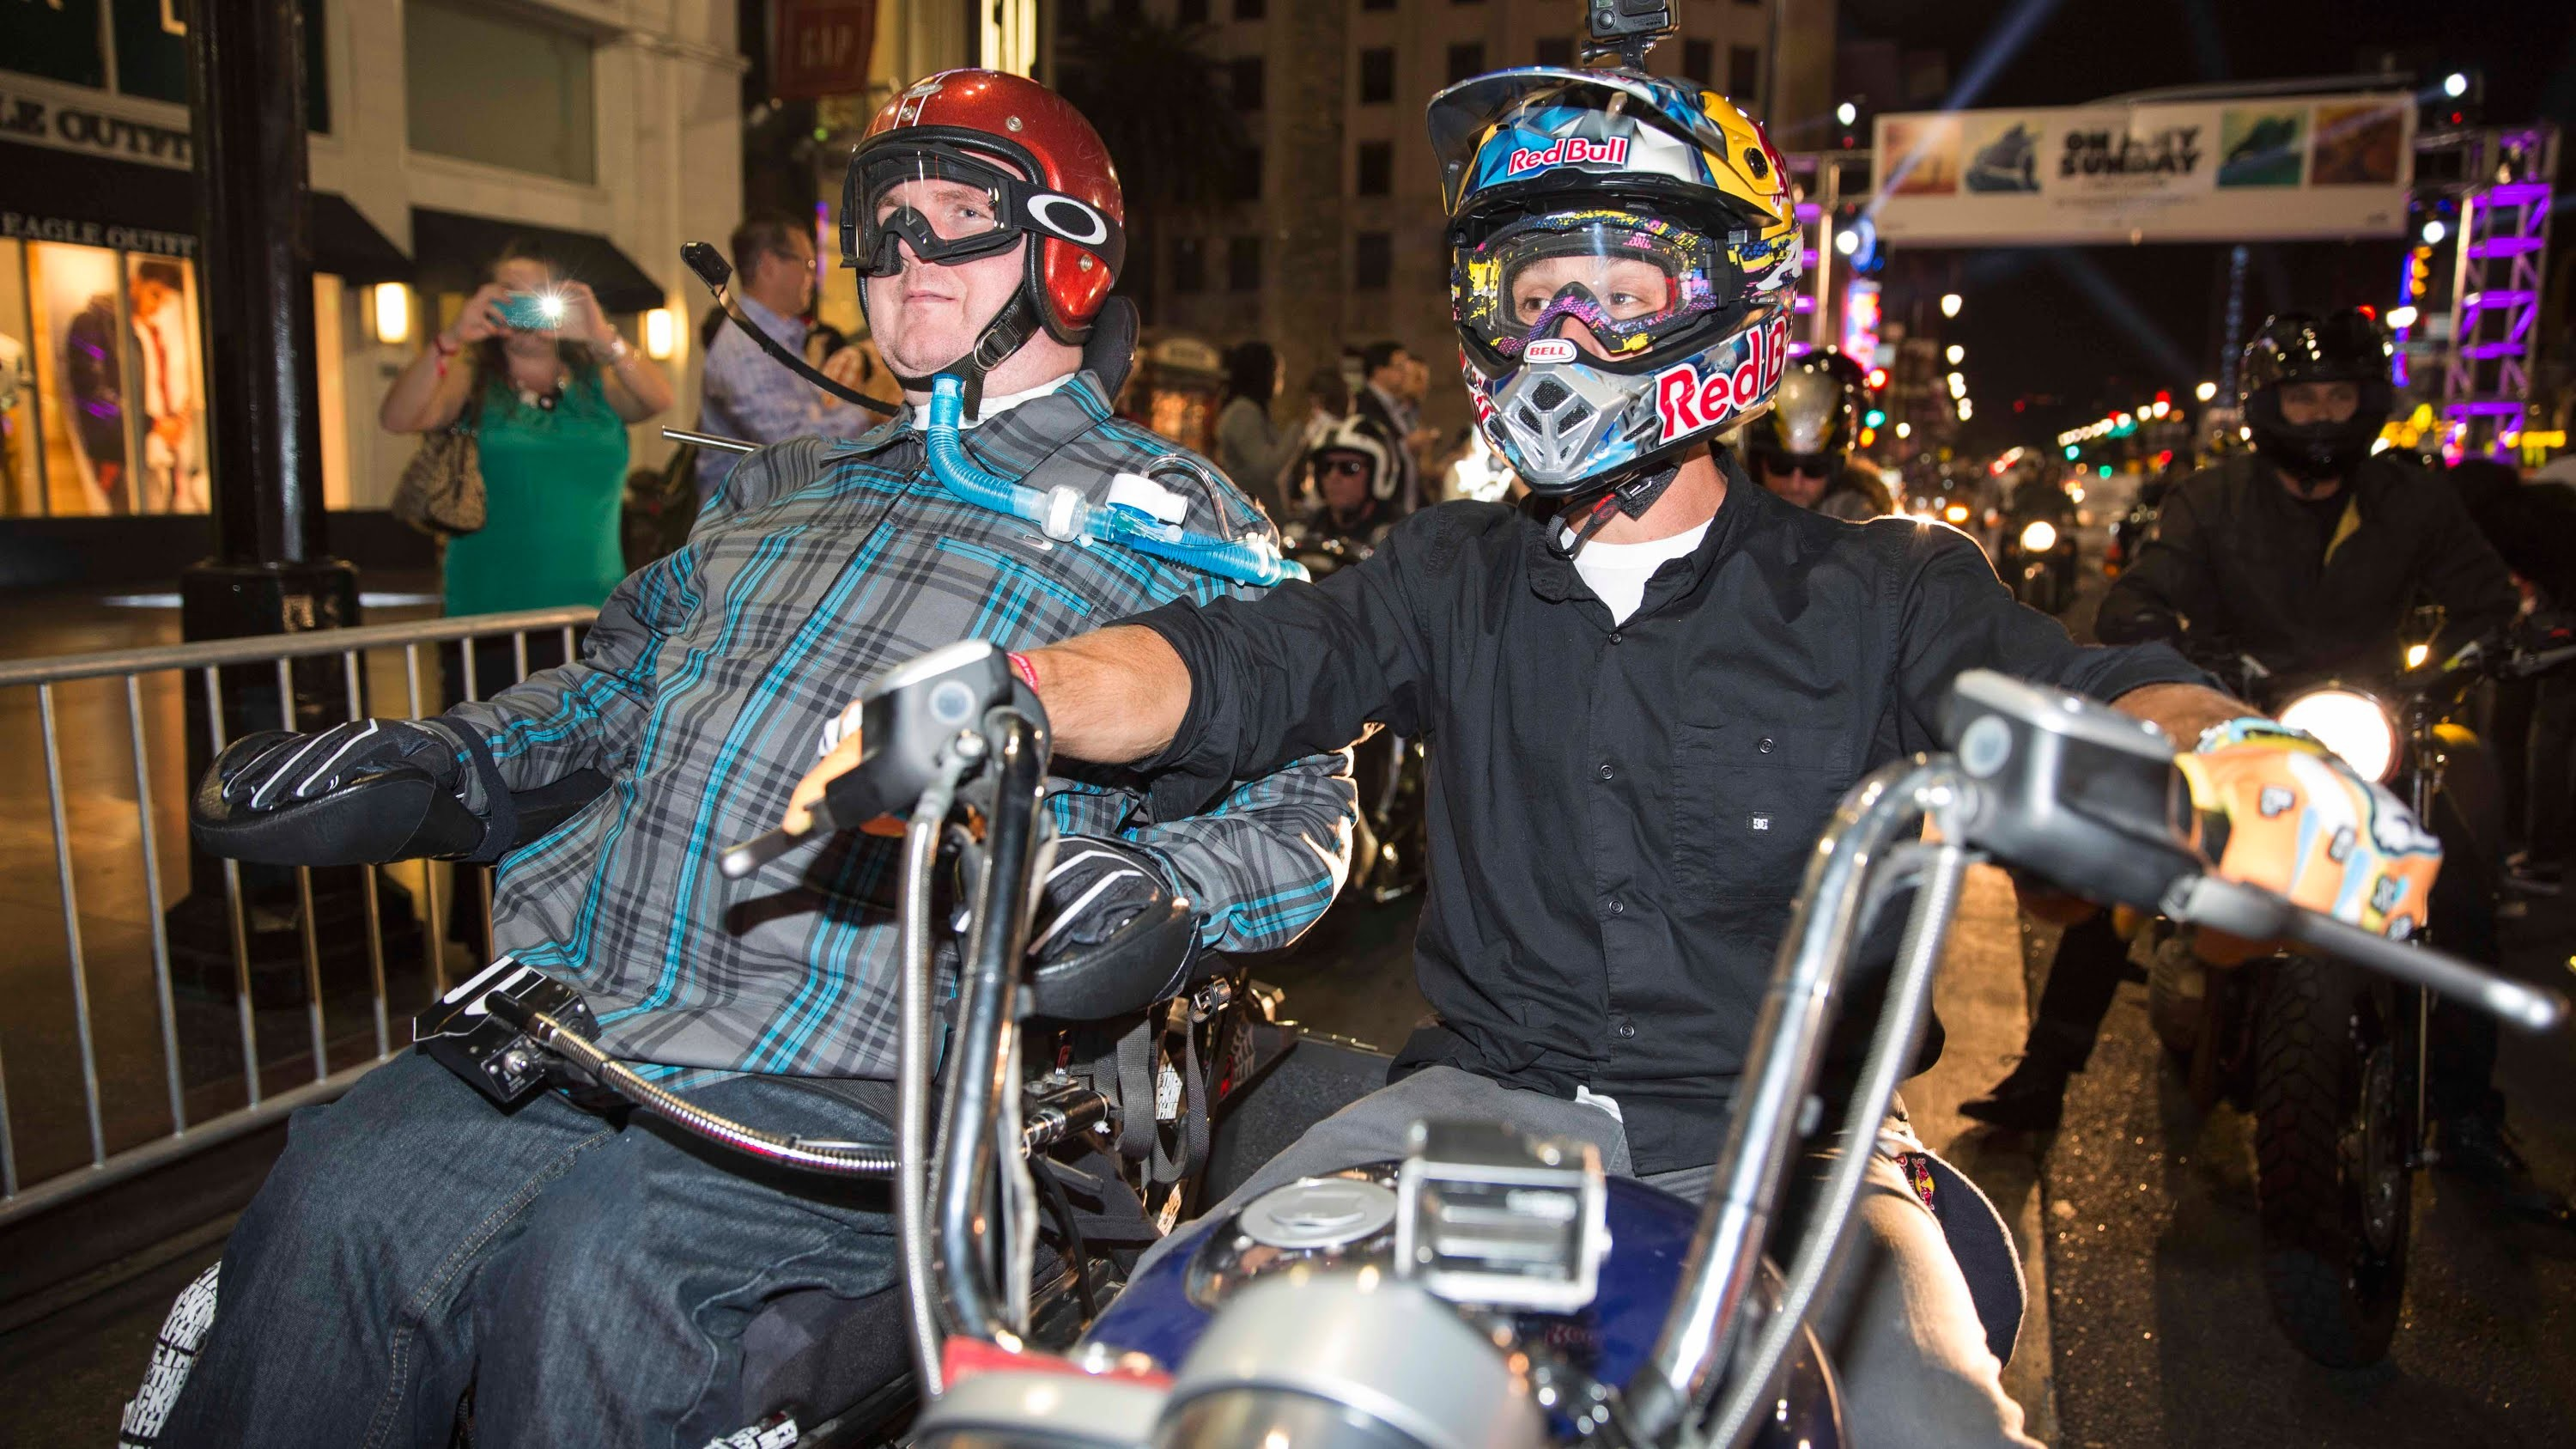 Chris Ackerman's First Motorcycle Ride in 12 Years w. Robbie Maddison